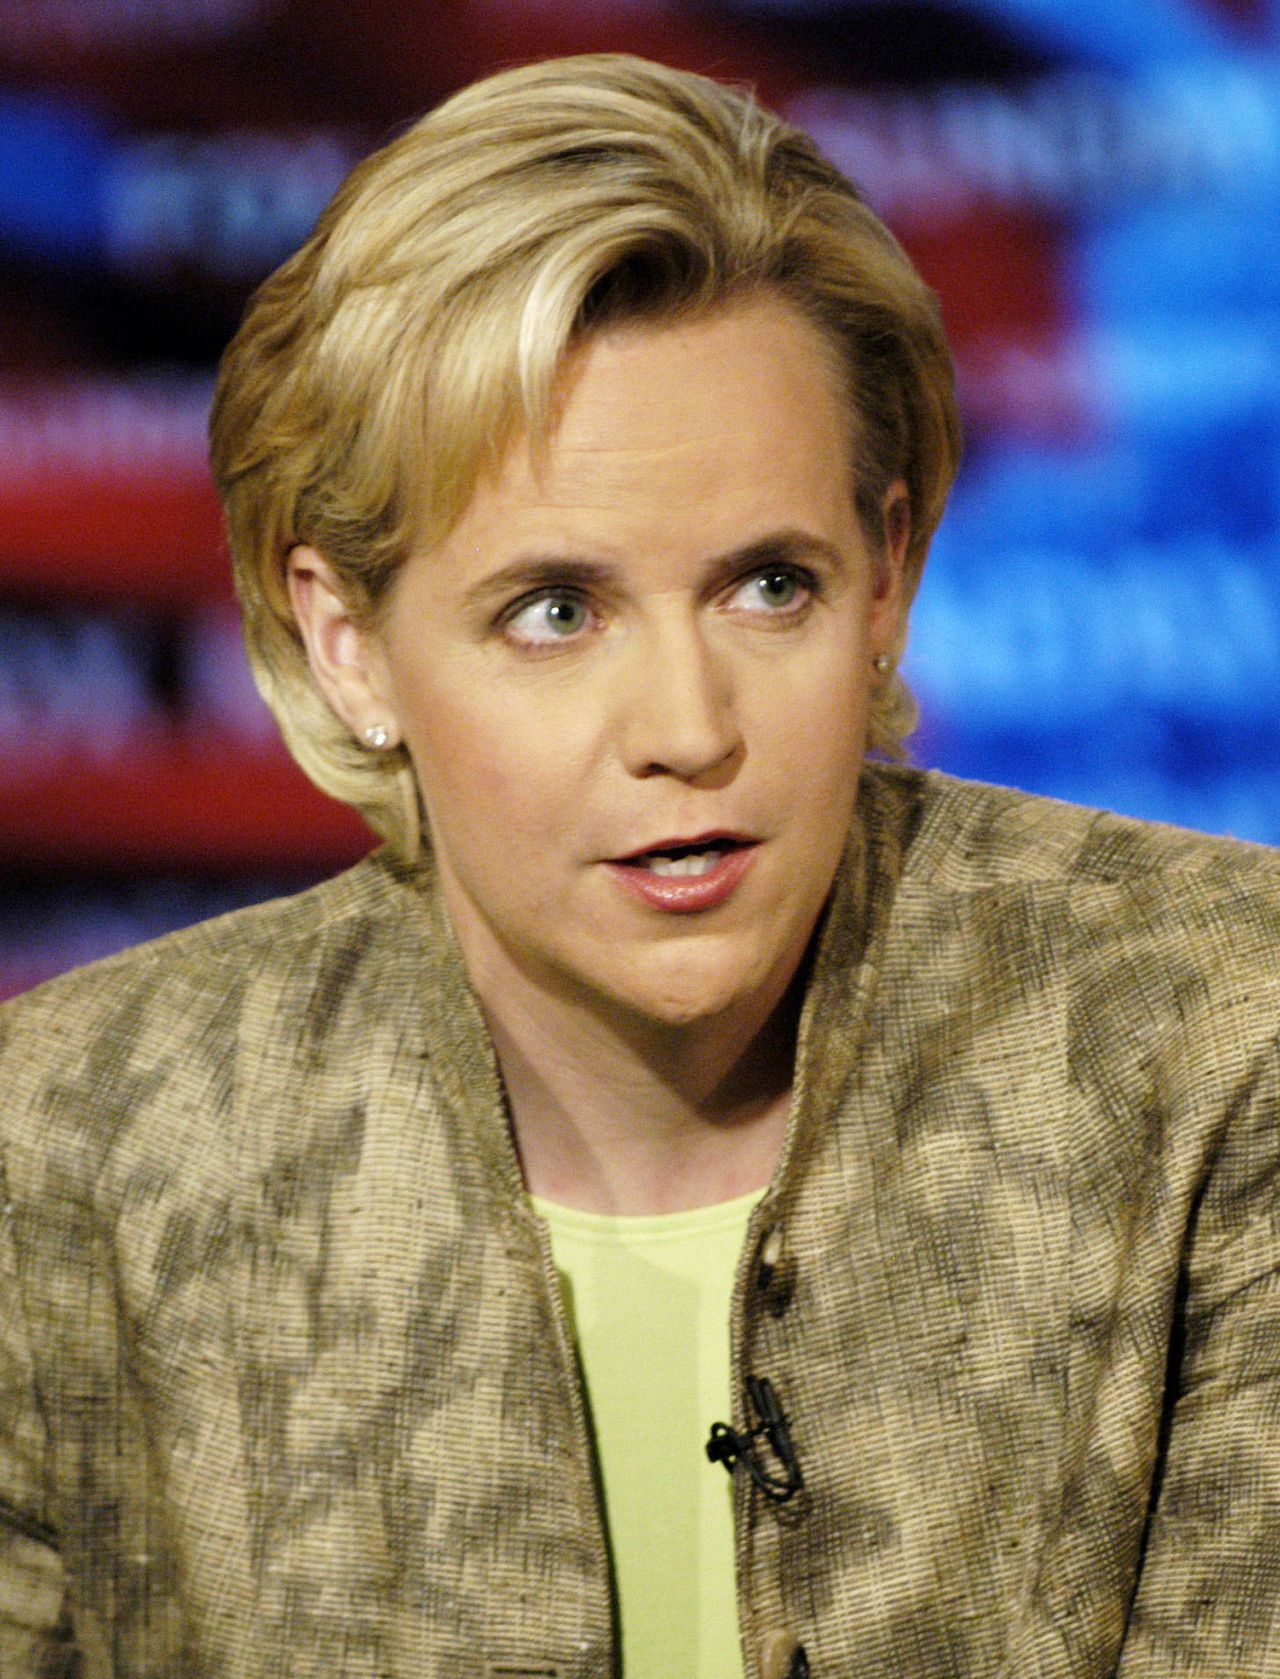 "Mary Cheney Foto Reuters Mary Cheney, daughter of Vice President Richard Cheney, speaks on ""Fox News Sunday"" in Washington, DC, May 14, 2006. Cheney defended her father's responses to criticism from the media and the public, saying ""Ultimately, he's going to base his decision and his position on what he knows is right and what is in the best interests of this country."" NO SALES NO ARCHIVES REUTERS/Fox News/Freddie Lee/Handout"